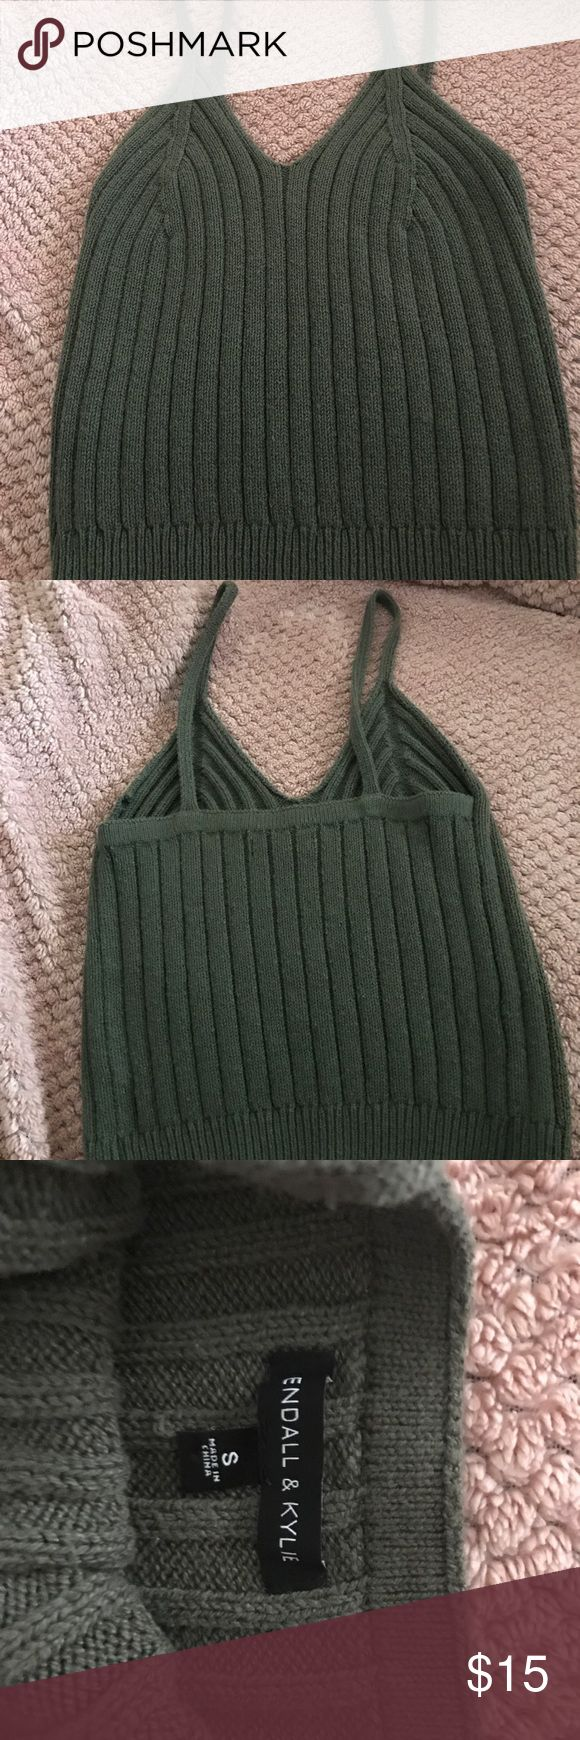 Kendall&kylie Olive Green knitted Crop Top Only worn it once!  Good condition I love it I don't fit into it no more just had a baby! Kendall & Kylie Tops Crop Tops